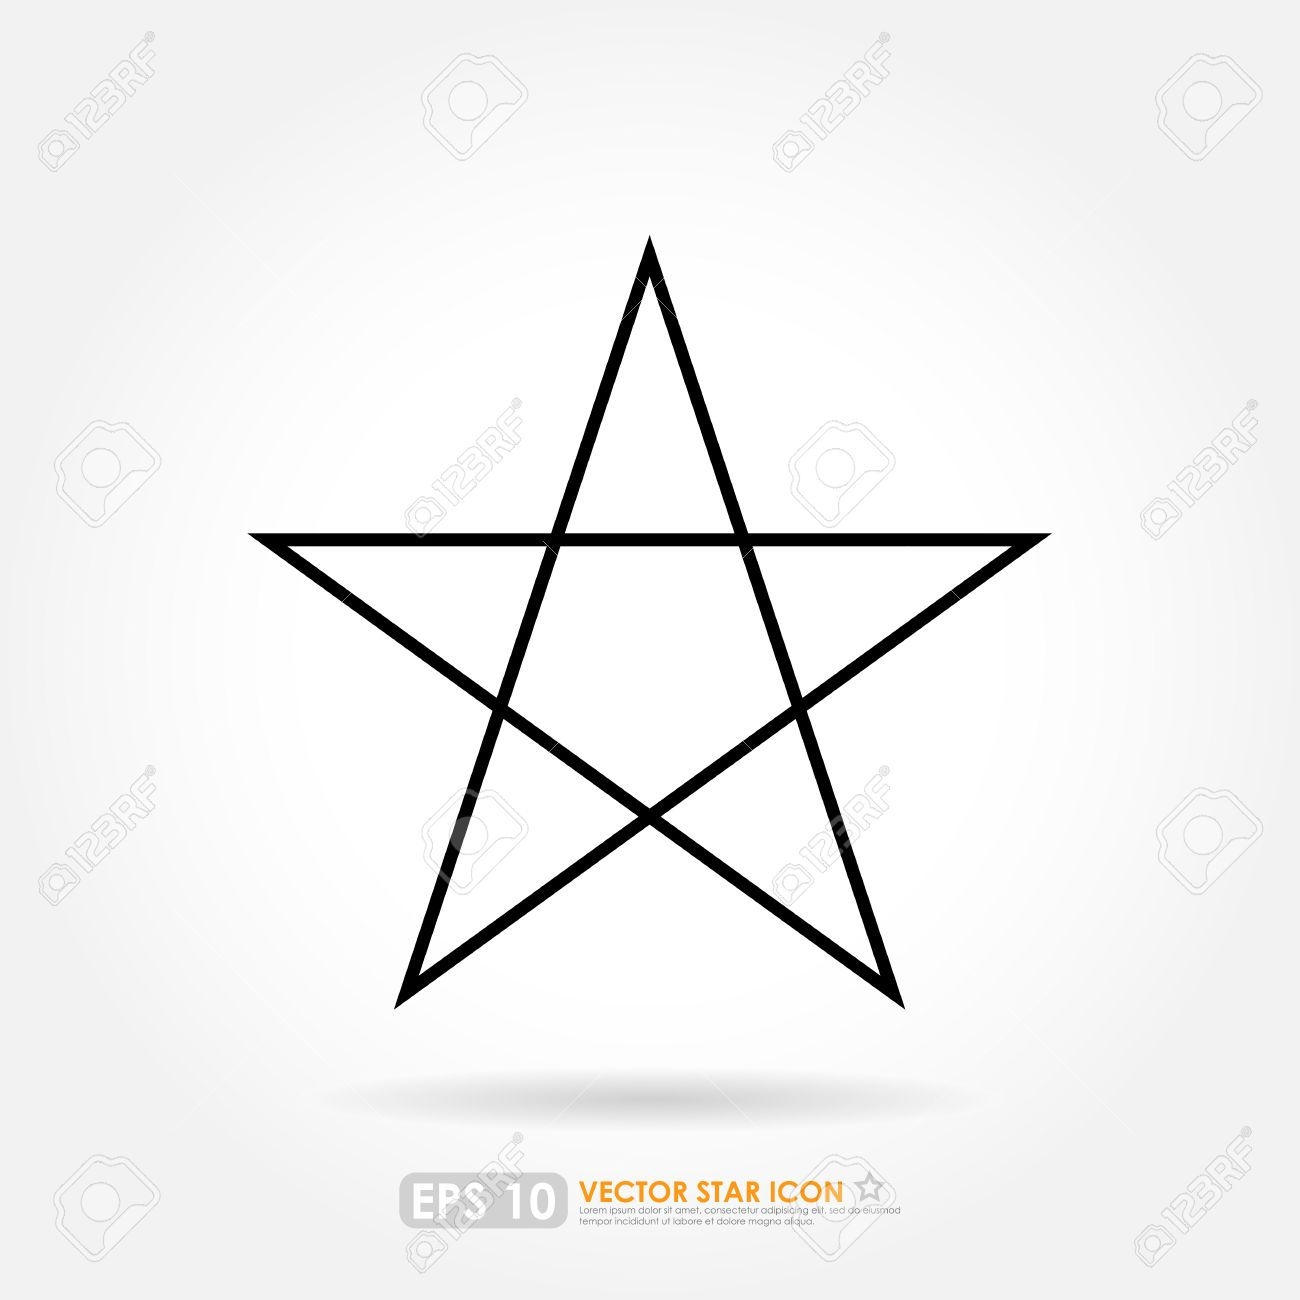 Simple star outline vector icon stock photo picture and royalty simple star outline vector icon stock photo 28162405 sciox Images